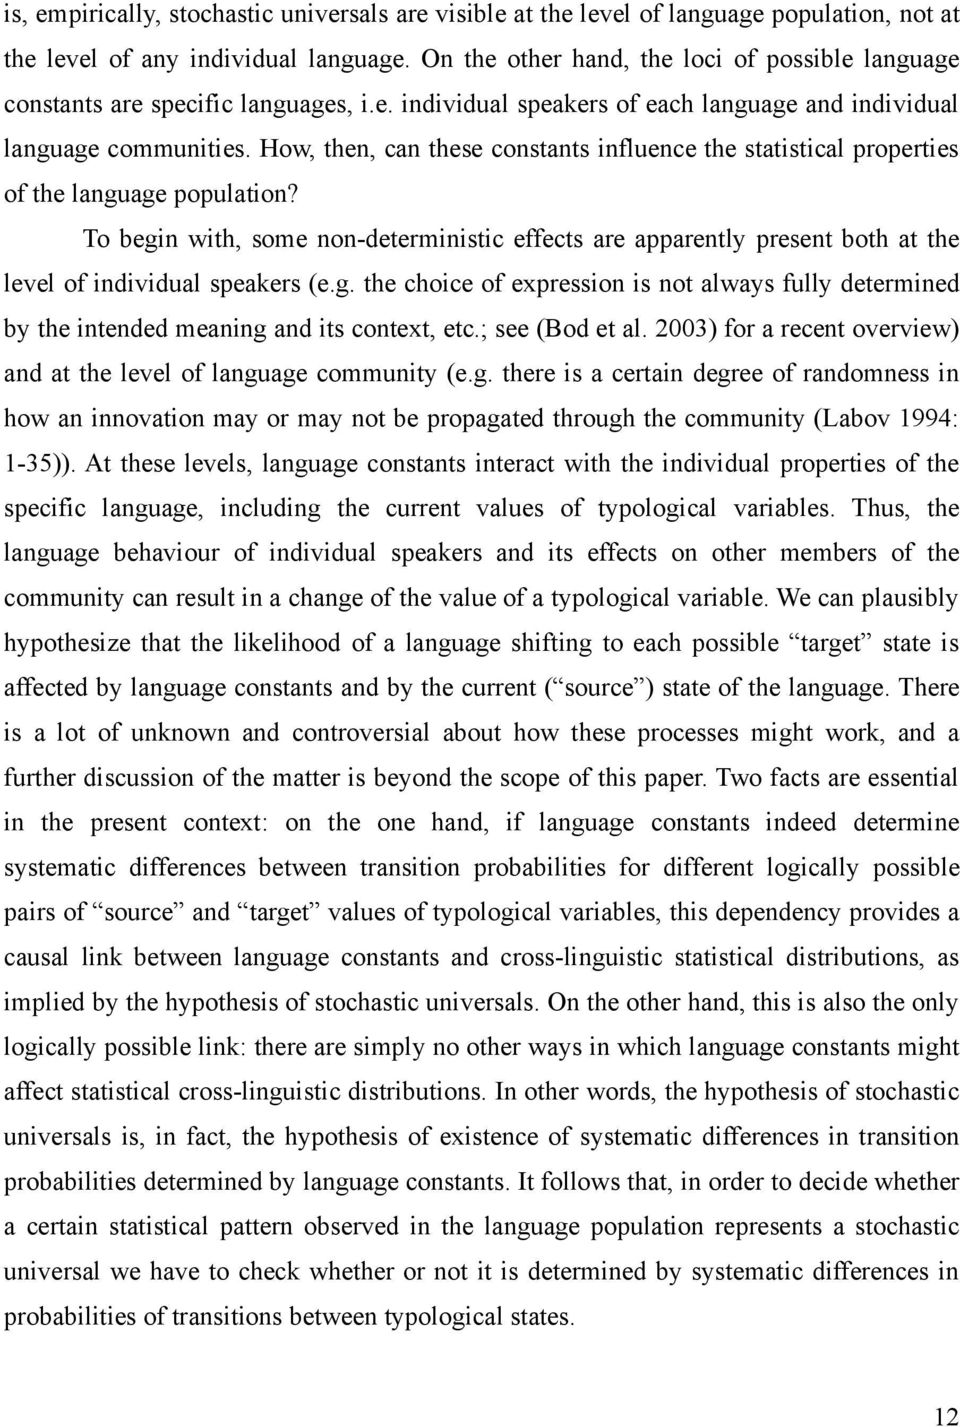 How, then, can these constants influence the statistical properties of the language population?